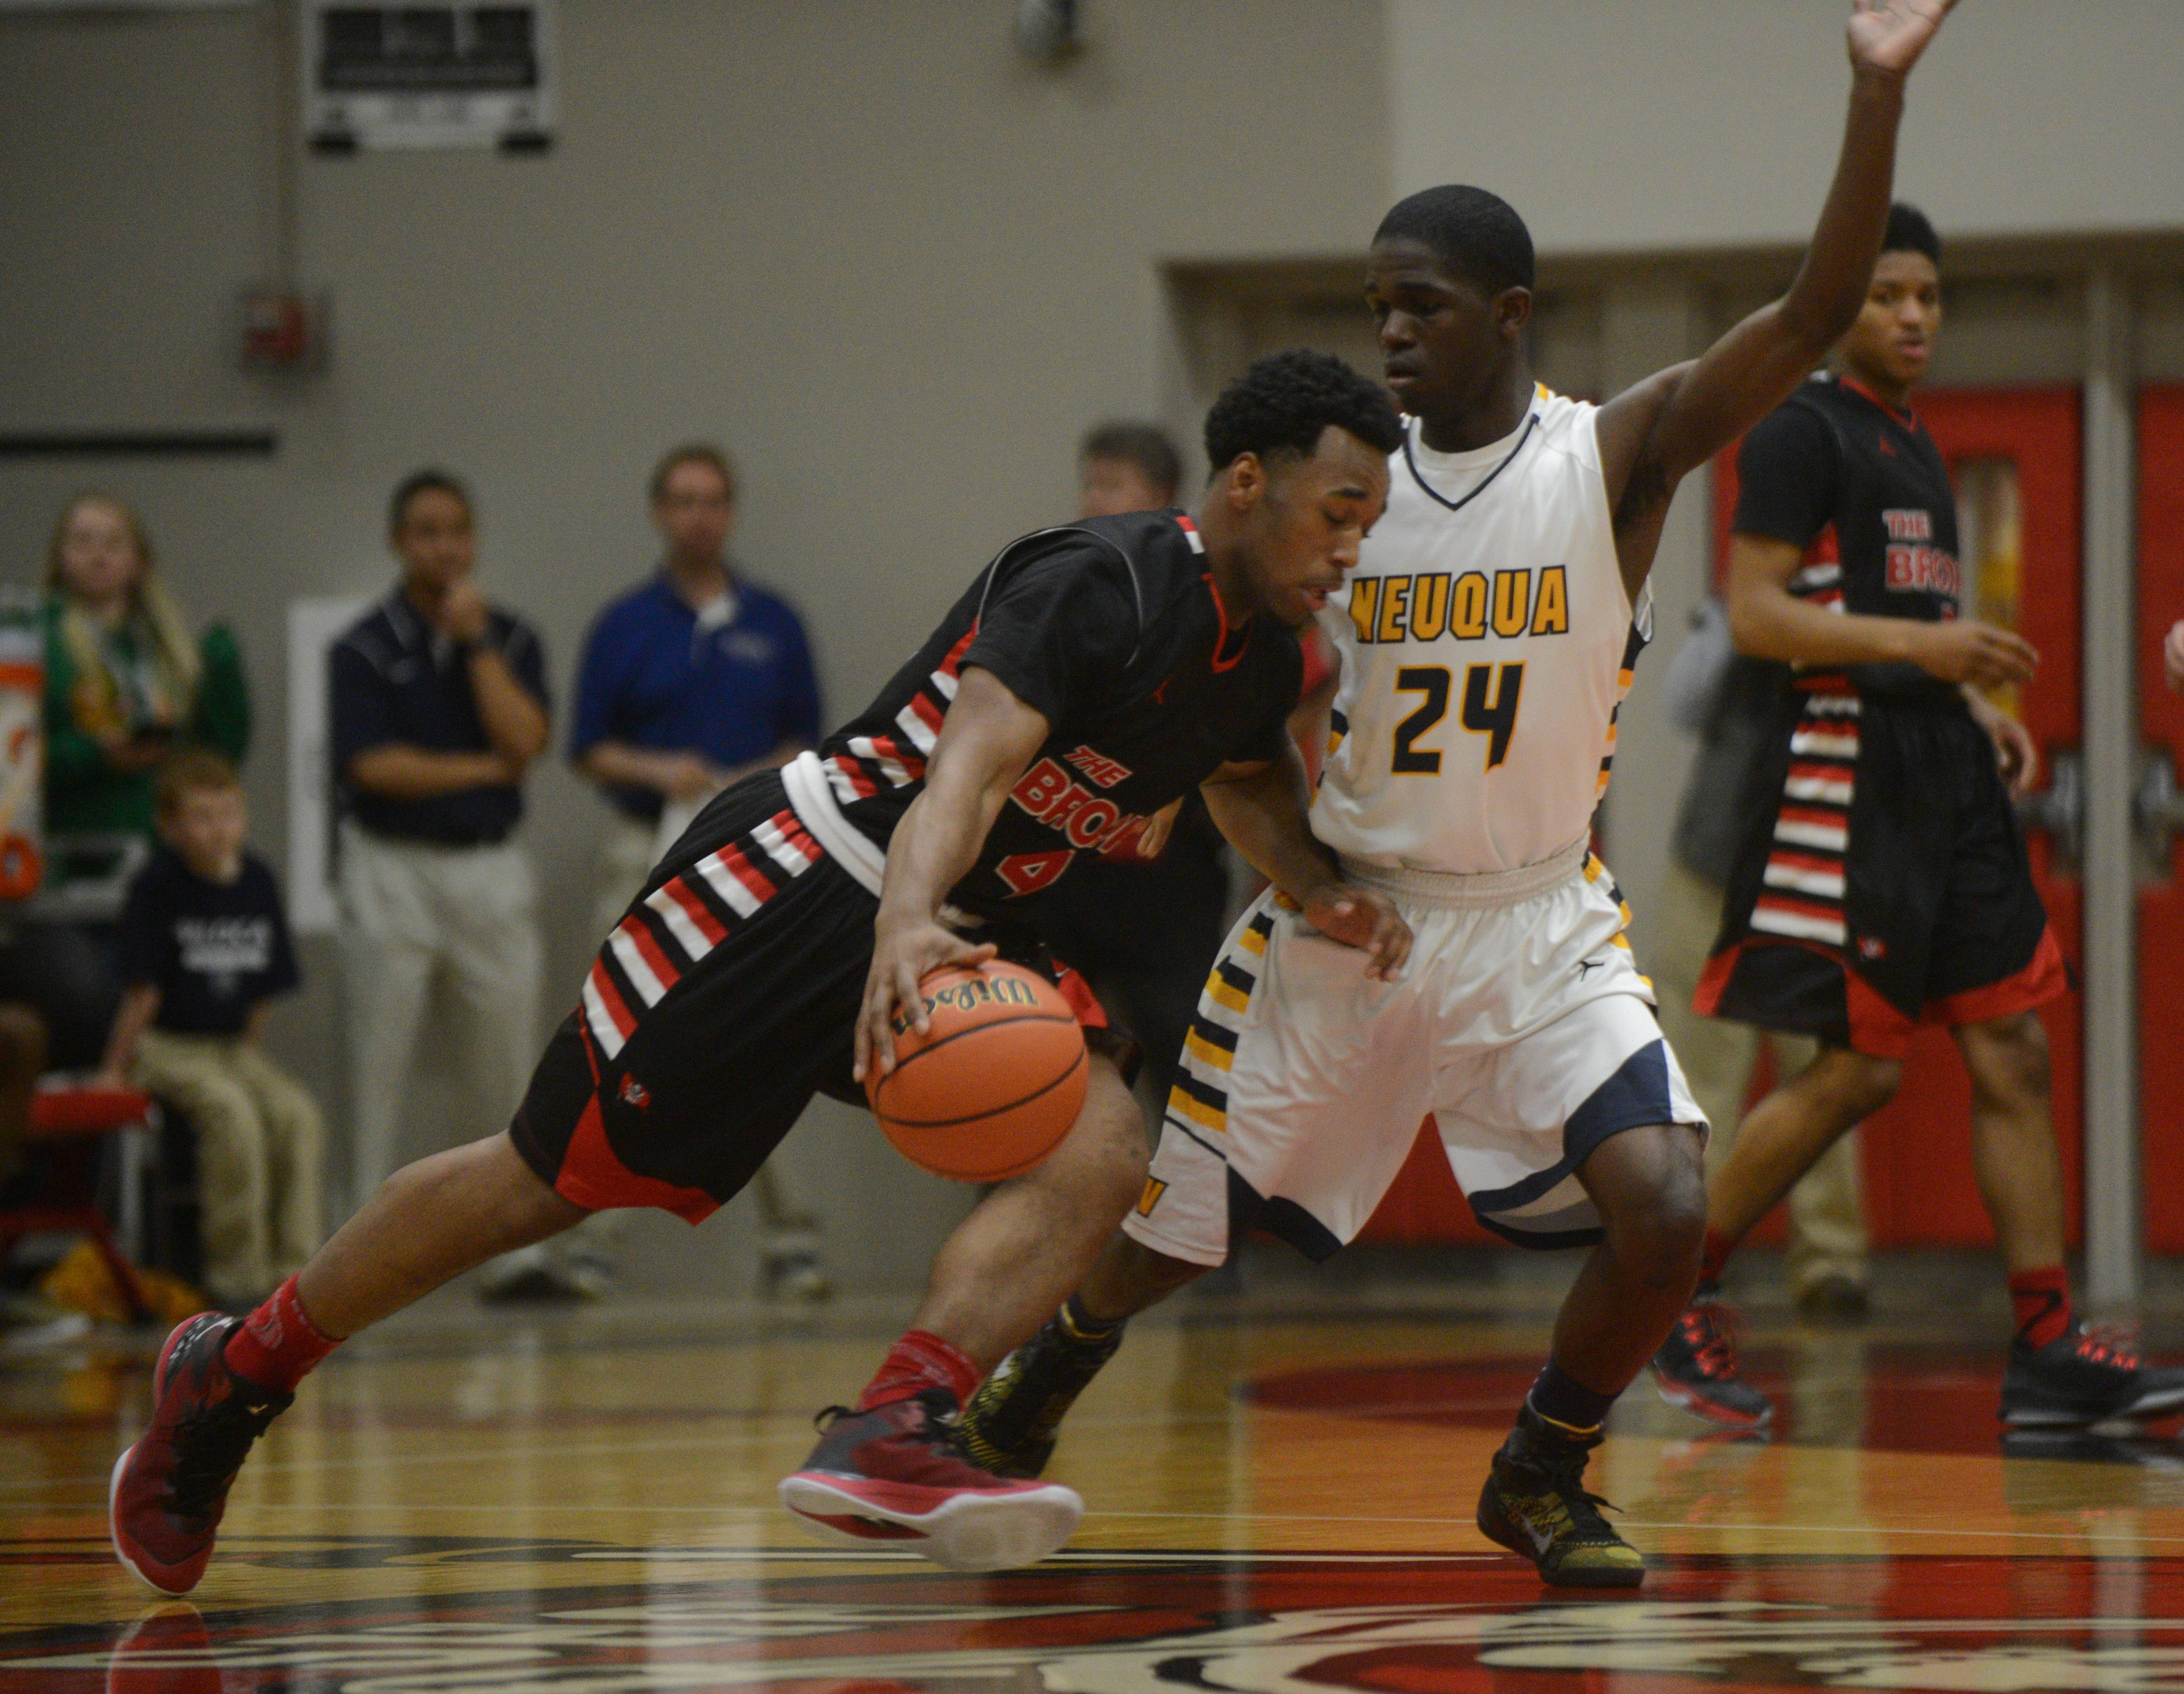 Images from the Neuqua Valley vs. Bolingbrook Class 4A sectional final boys basketball game on Friday, March 13.